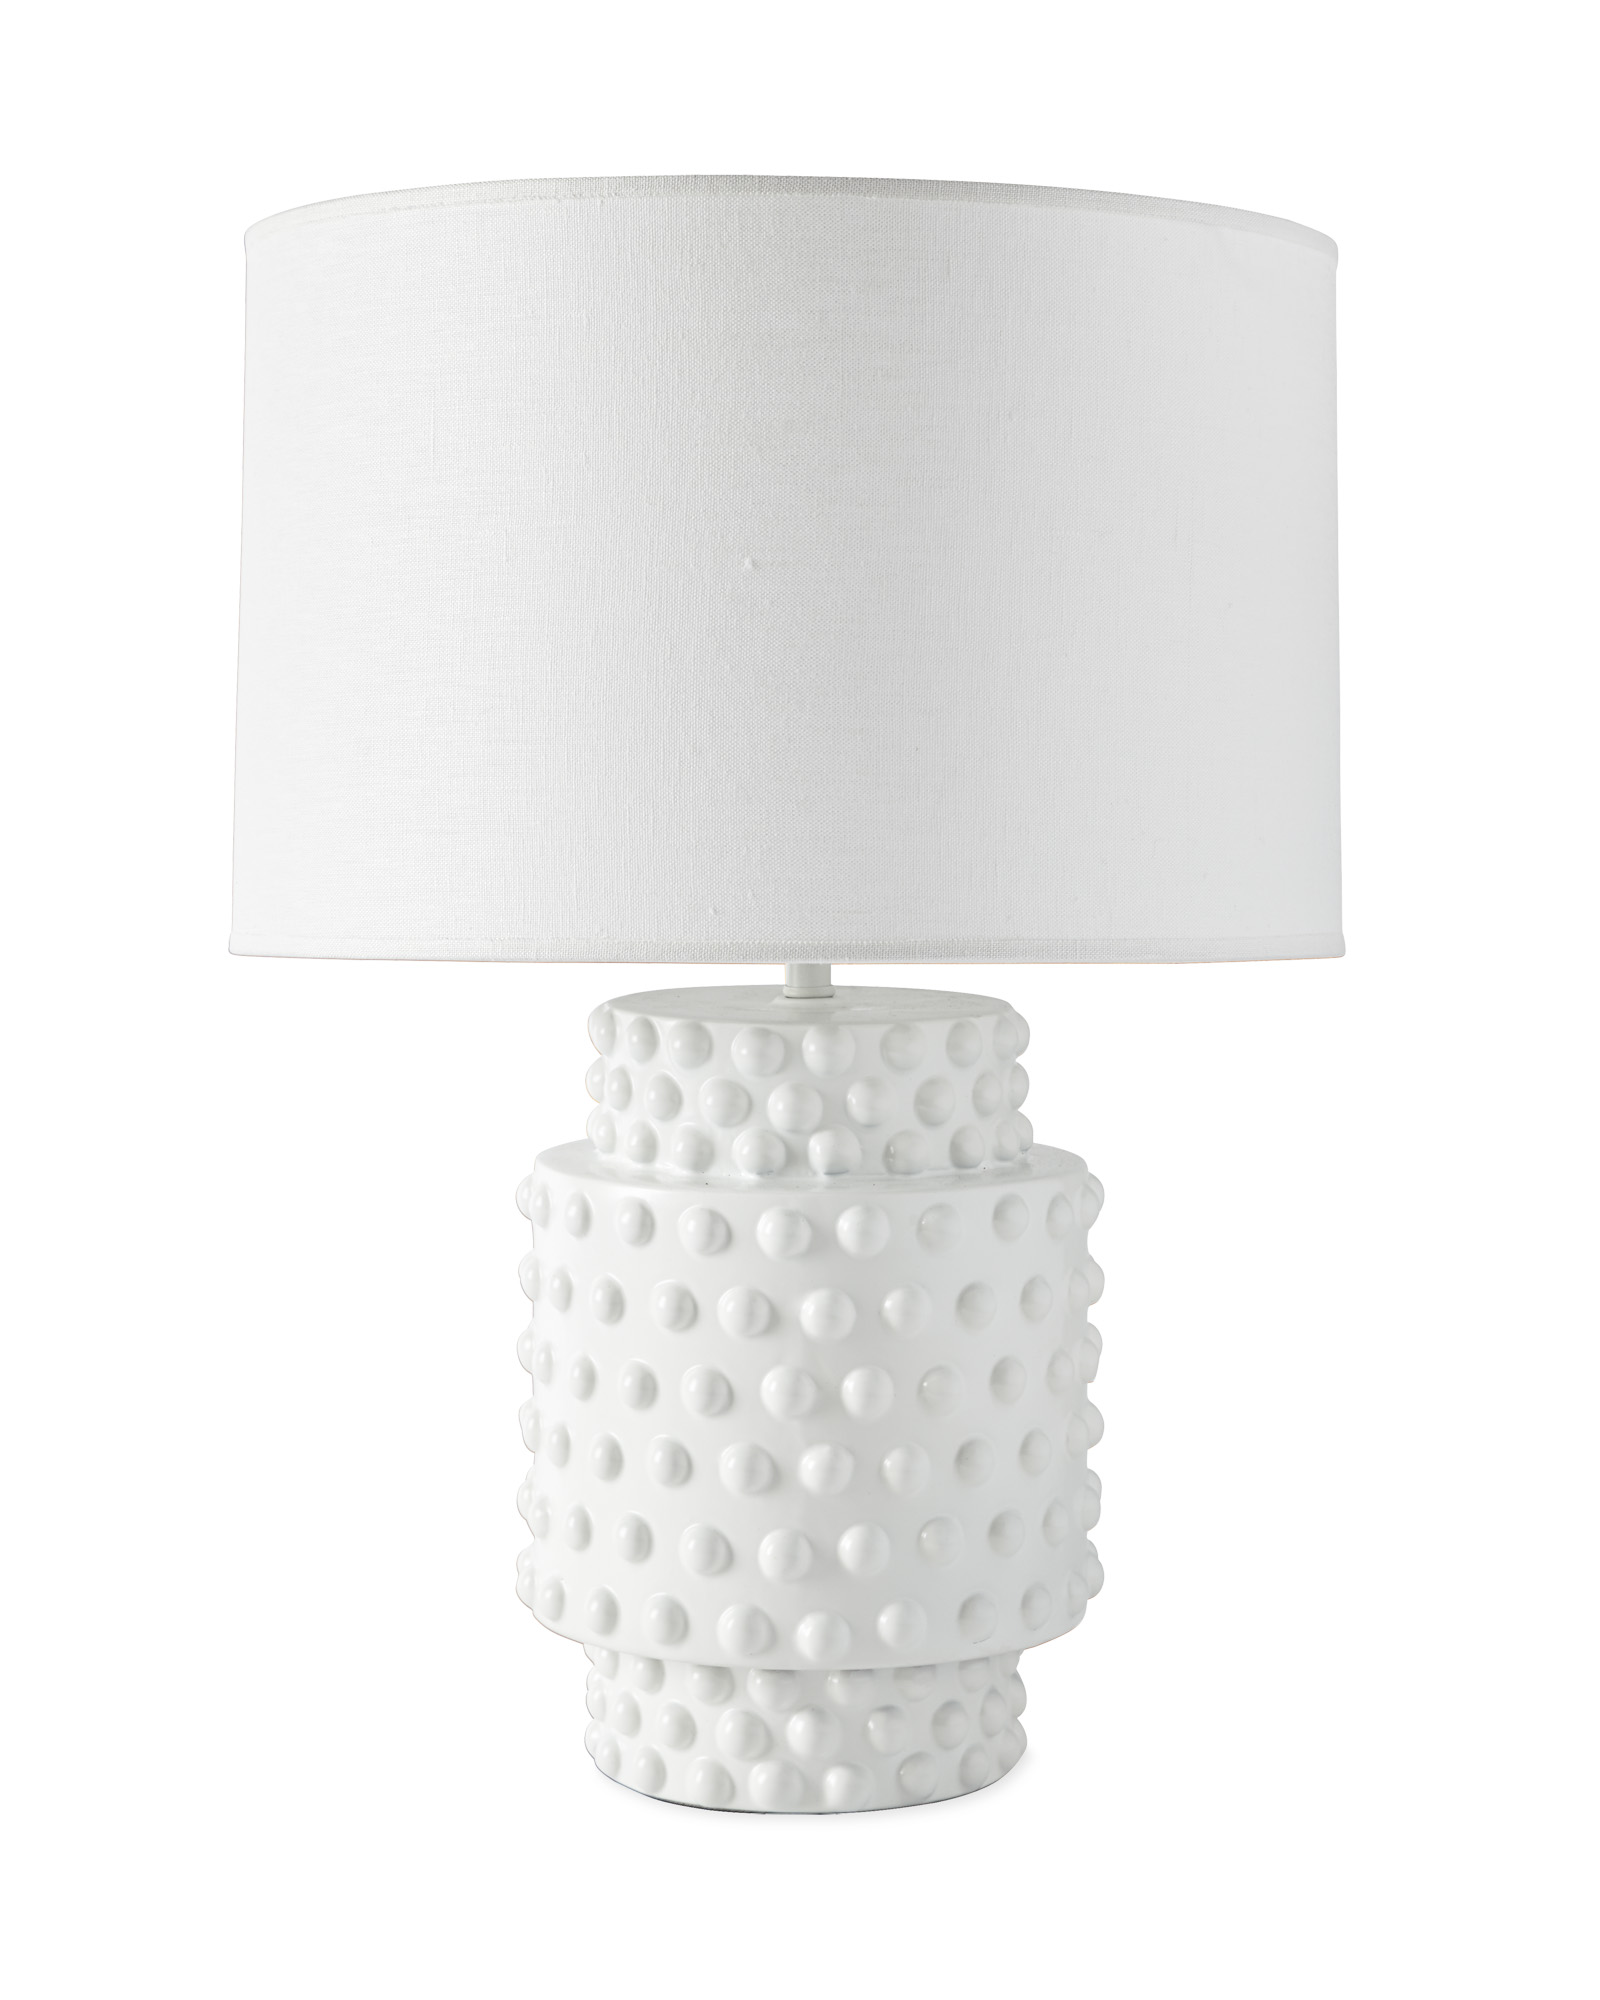 Lighting_Tinsley_Table_Lamp_White_MV_Crop_SH.jpg